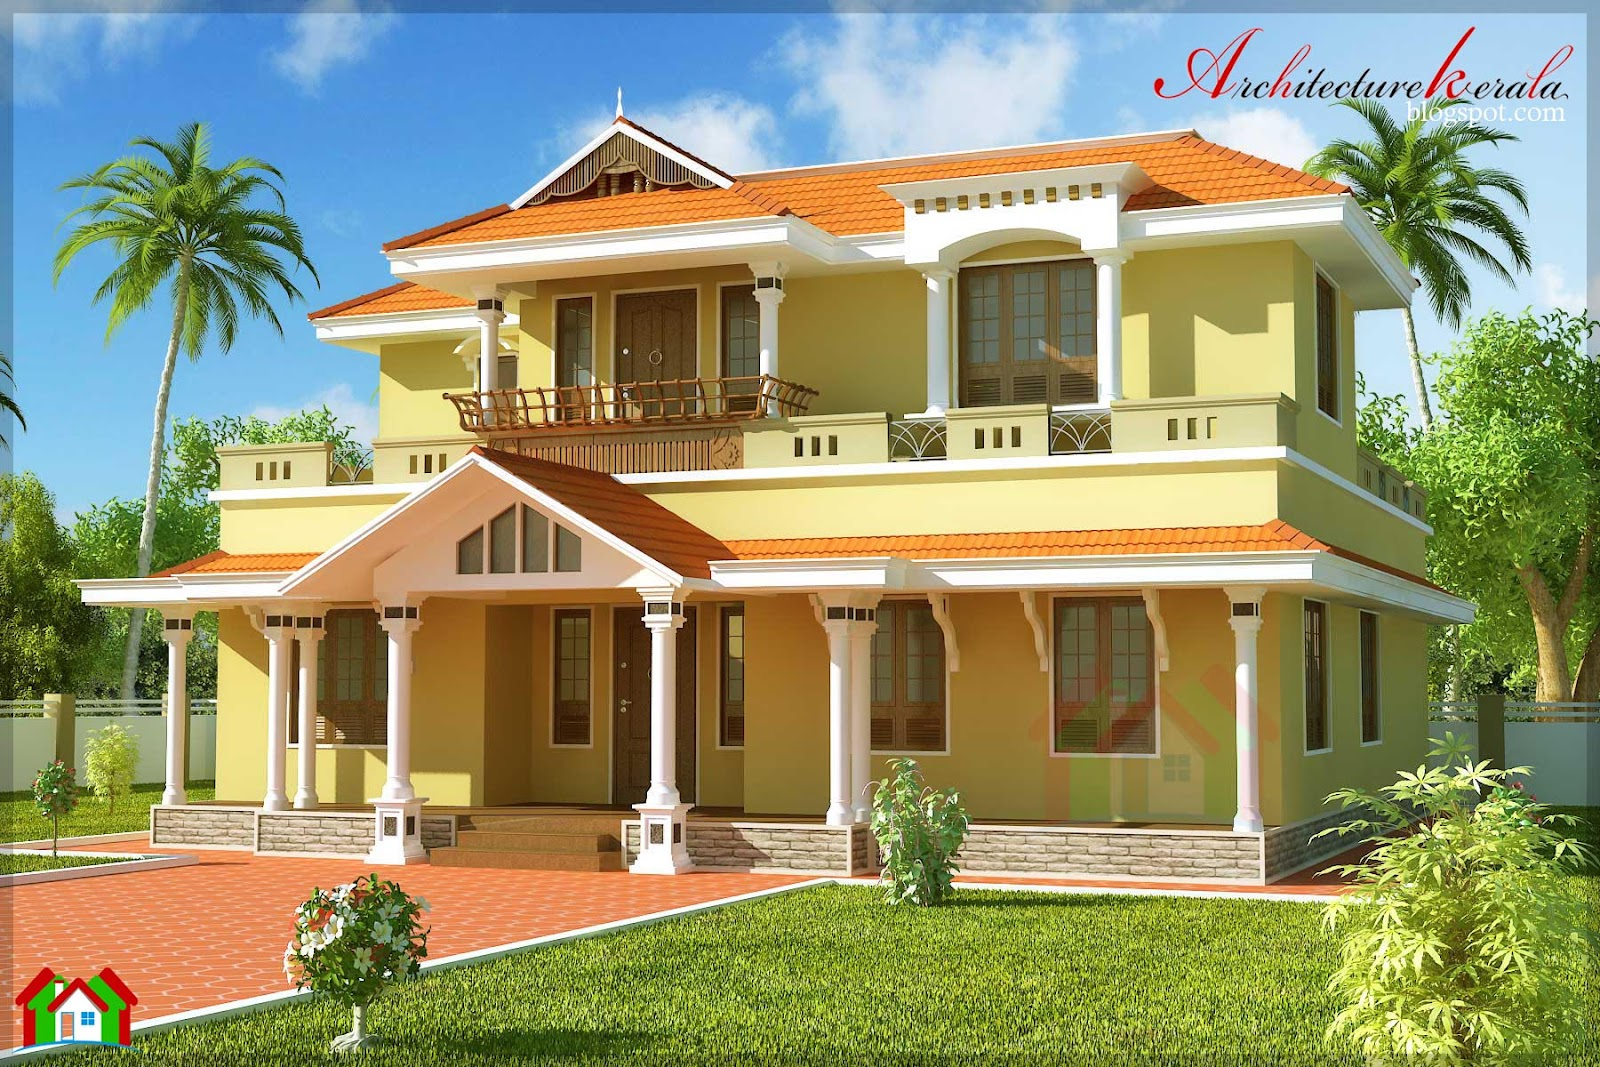 Architecture kerala 2500 square feet traditional style for Home designs traditional